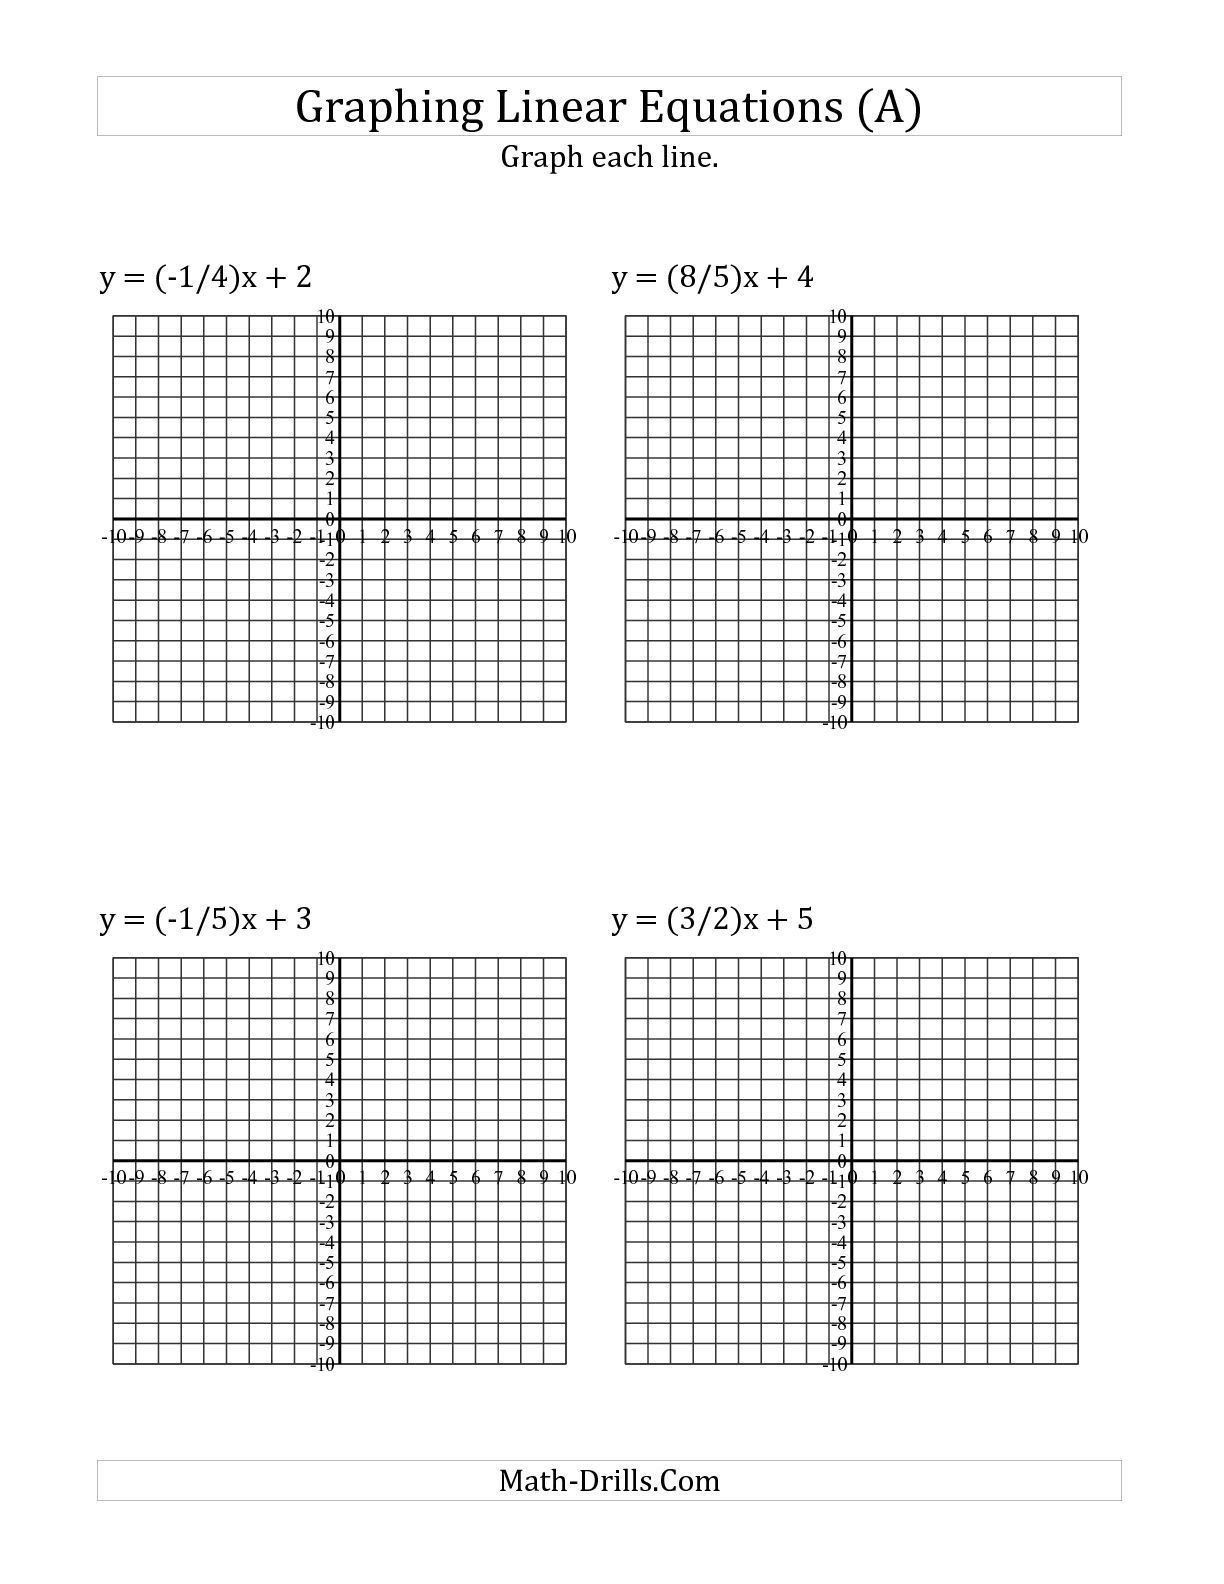 Graphing Absolute Value Equations Worksheet Graphing Pound Inequalities Worksheet 59 Gr Graphing Linear Equations Graphing Linear Inequalities Linear Equations